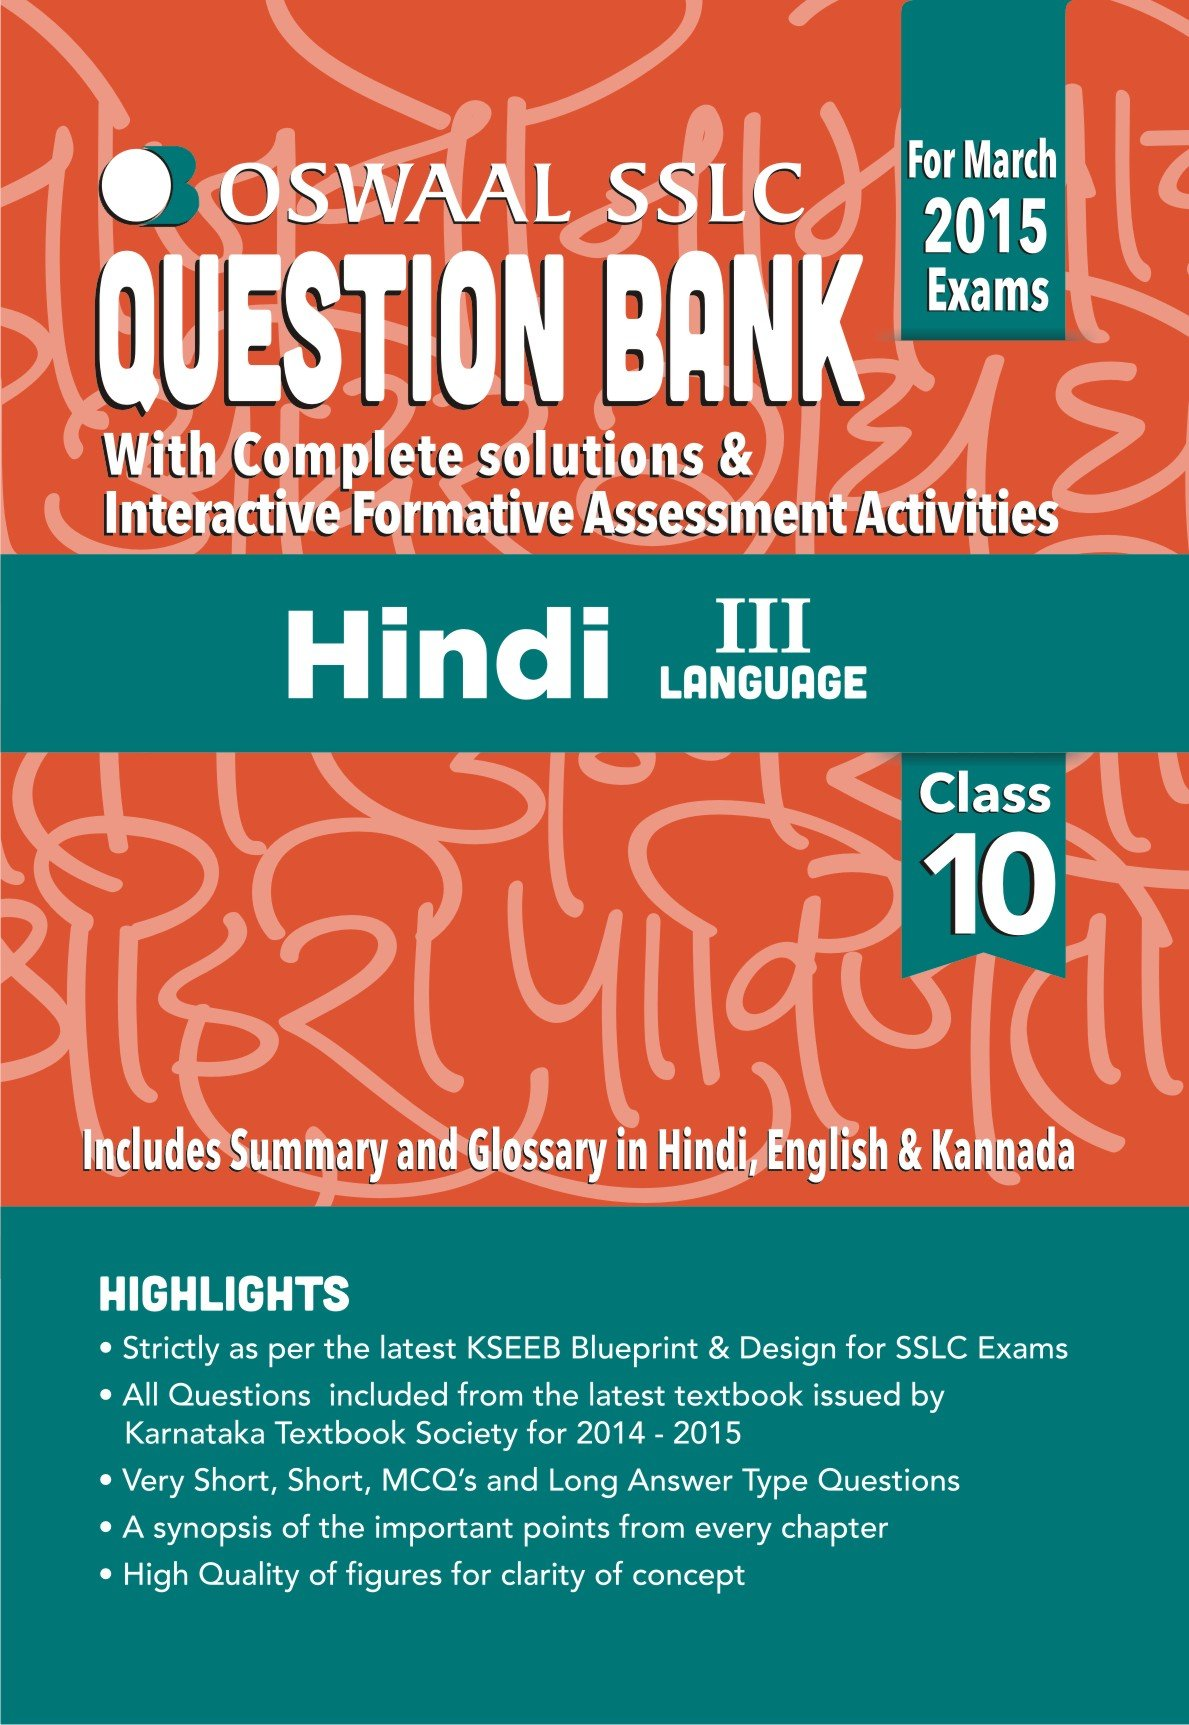 Amazon buy oswaal sslc question bank with complete solutions for amazon buy oswaal sslc question bank with complete solutions for class 10 hindi 3rd language book online at low prices in india oswaal sslc question malvernweather Choice Image